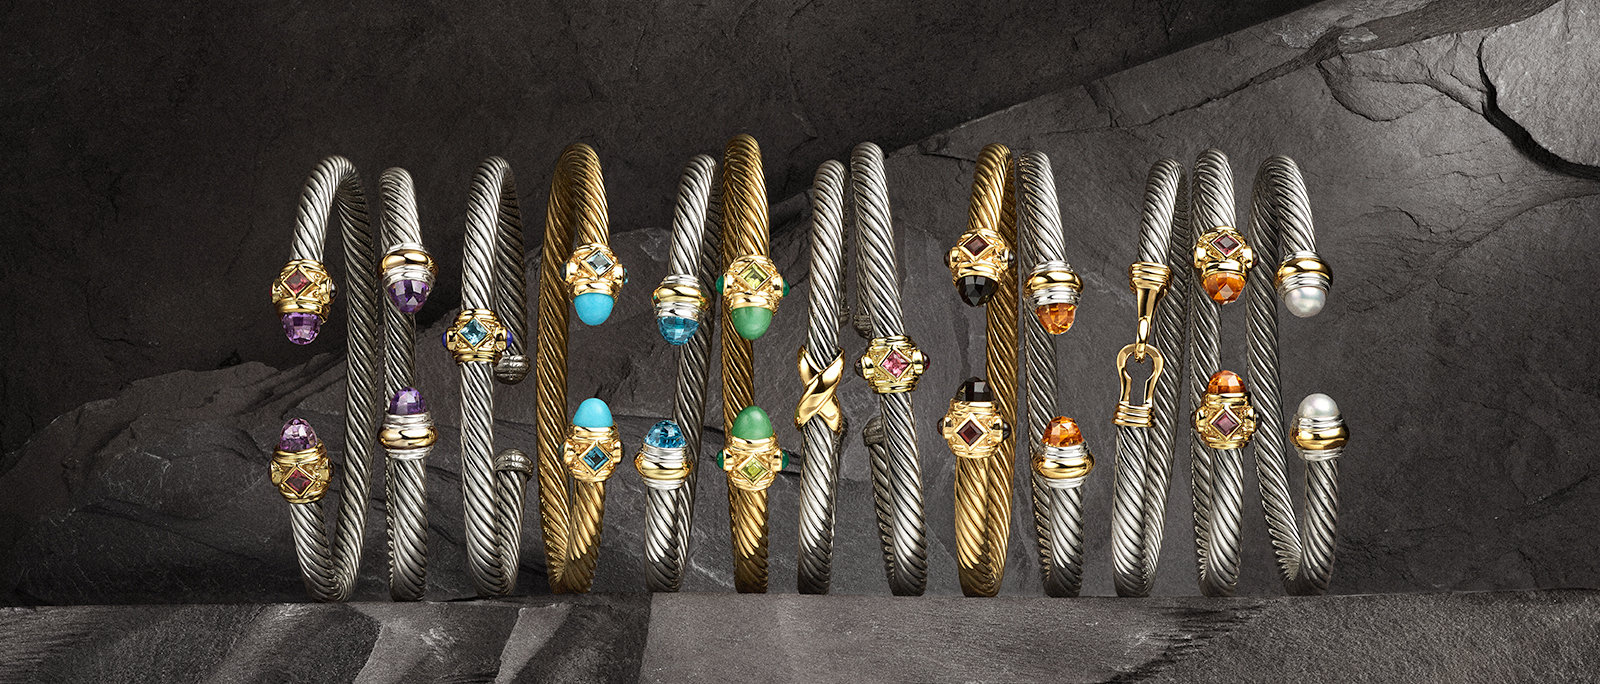 David Yurman Renaissance, The Cable Collection® and X Collection bracelets in sterling silver with 18K gold or in 18K gold with a chromatic array of colored gemstones